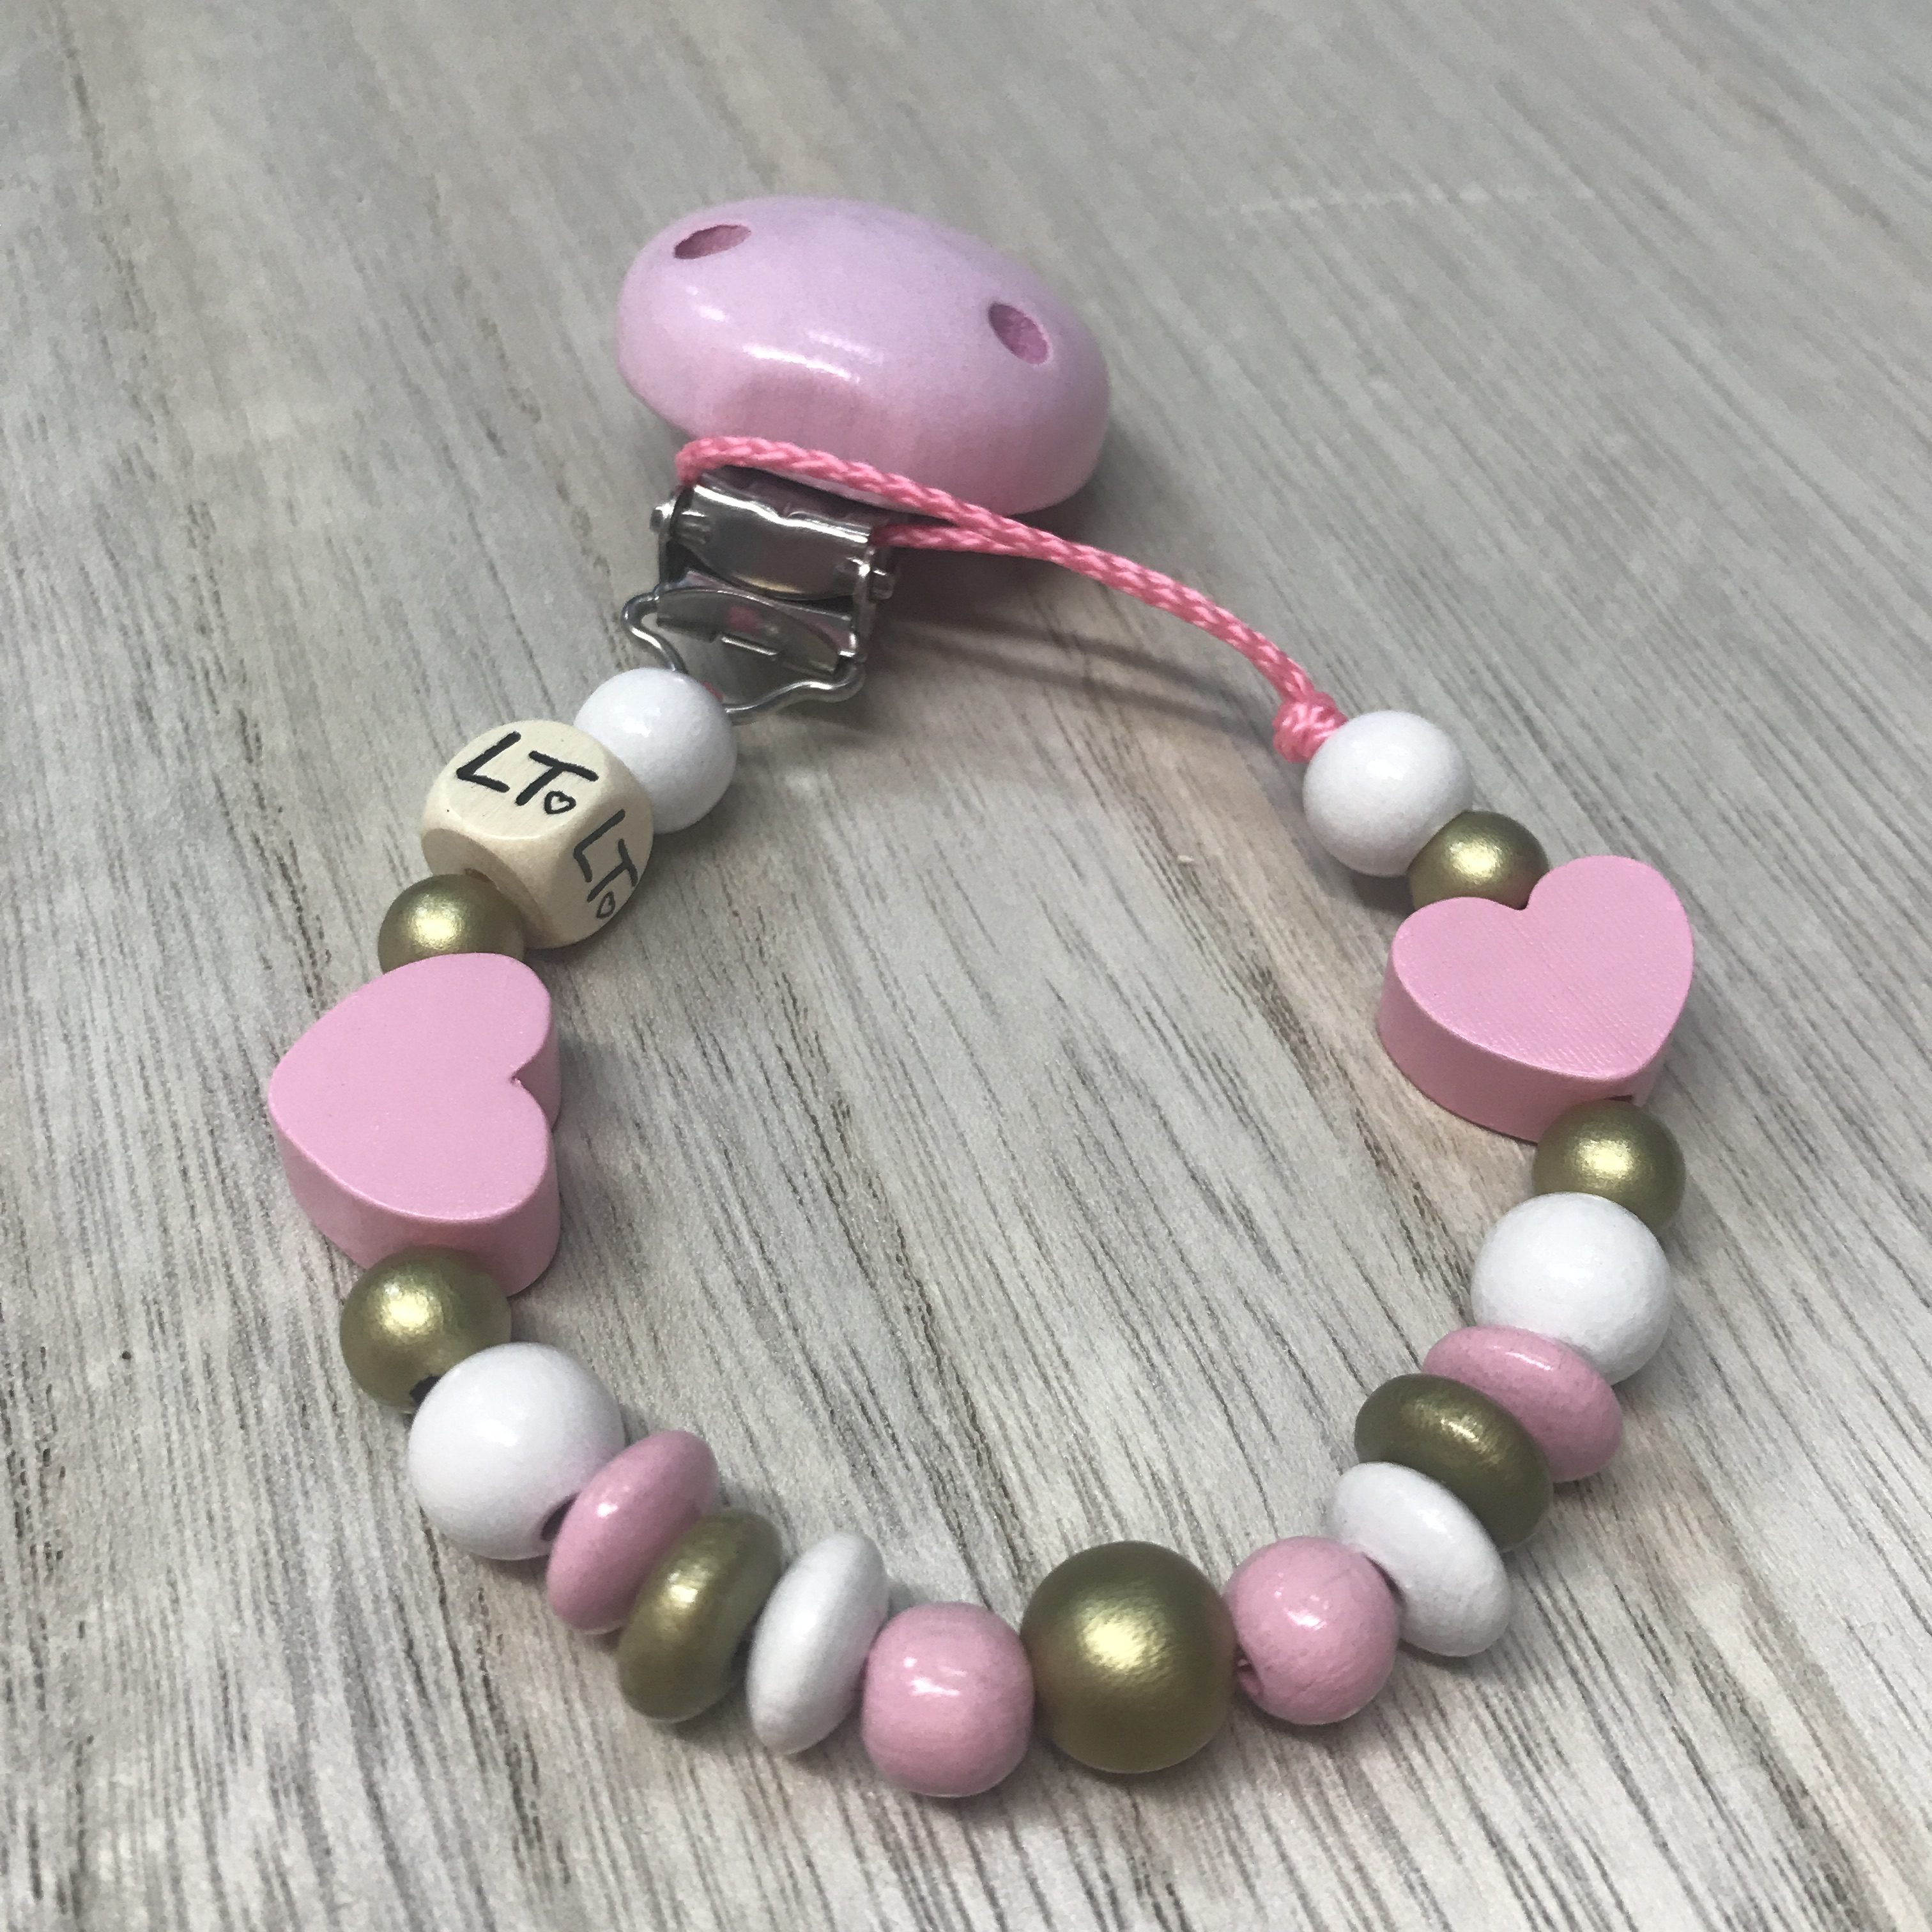 Luna Treasures Pink Hearts Wooden Soother Chain